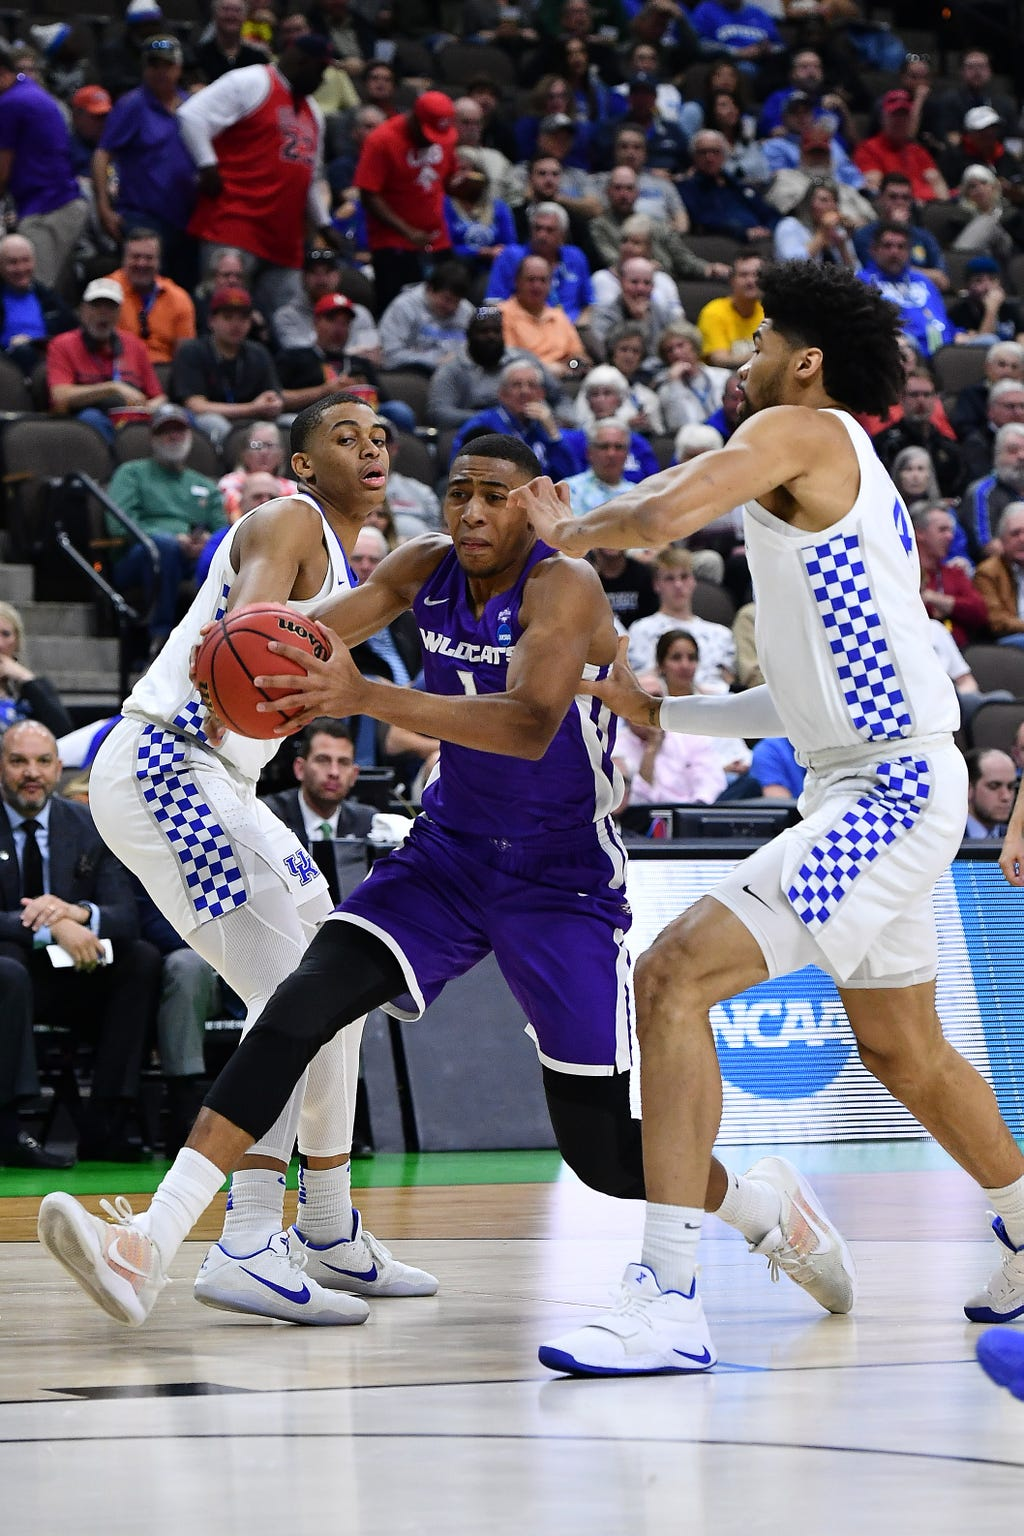 The Abilene Christian University men's basketball team in March played the University of Kentucky in an opening game in the NCAA Tournament in Jacksonville, Florida. It was Wildcats vs. Wildcats, with the ones from West Texas falling in the program's first tournament appearance.